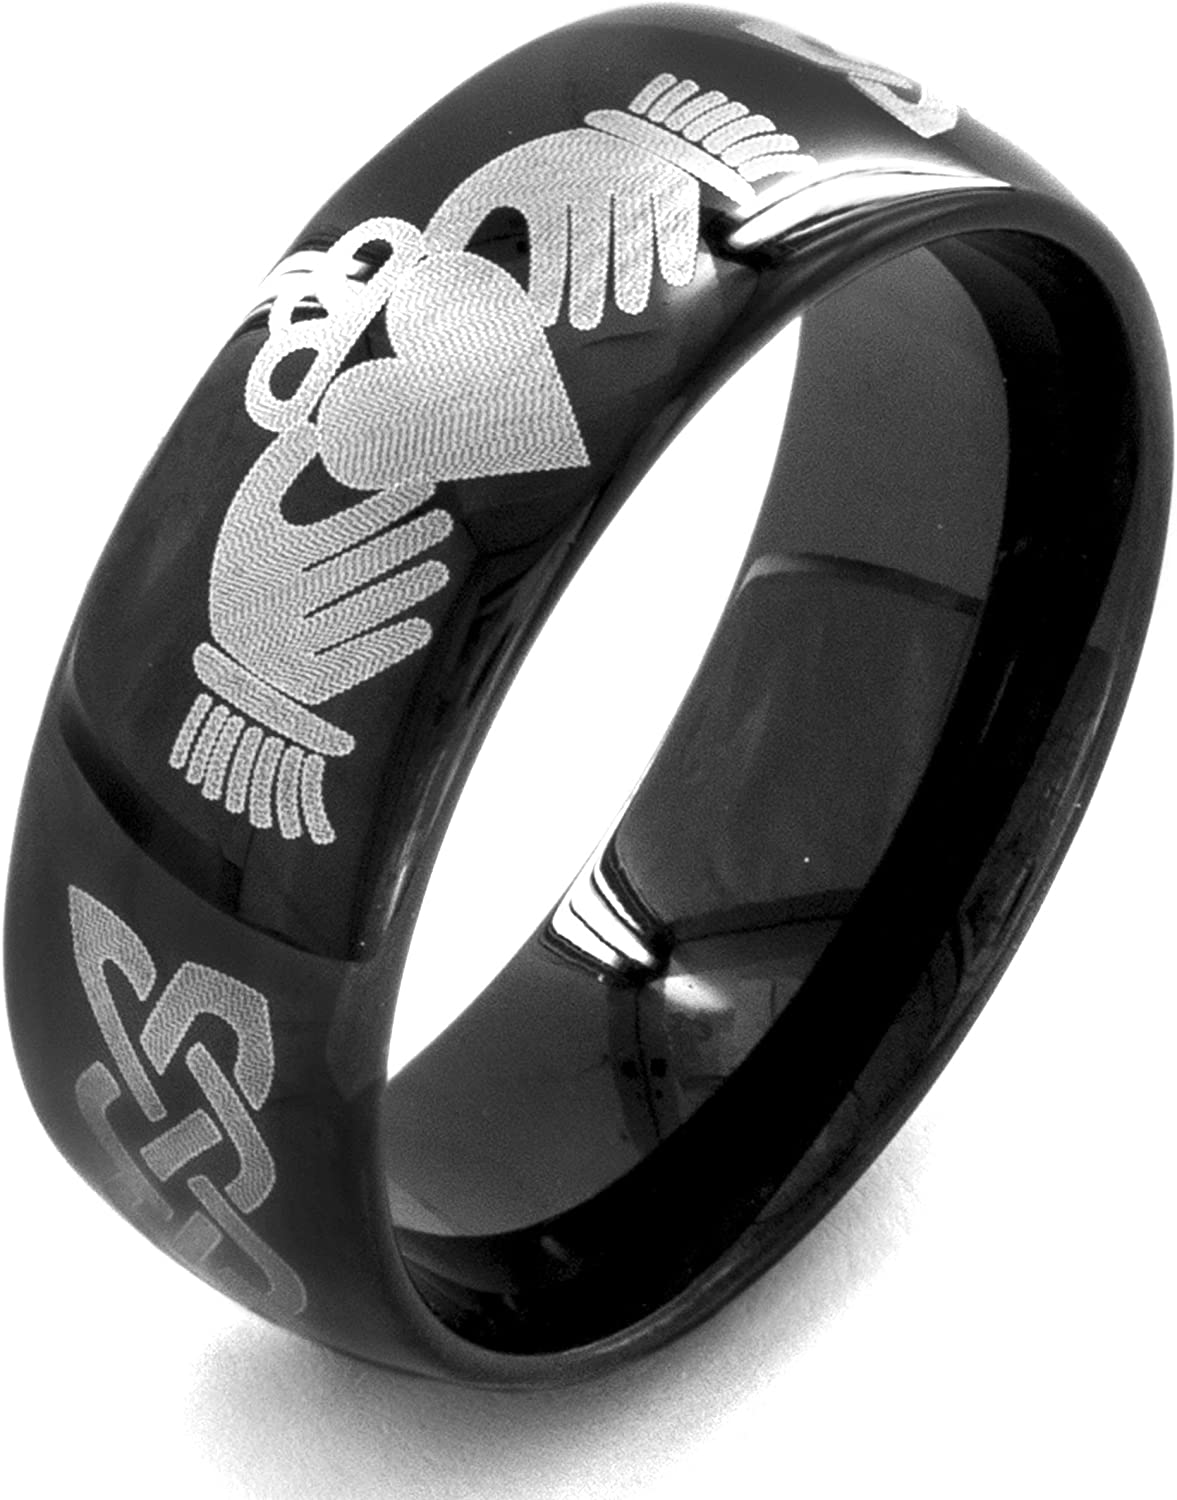 West Coast Jewelry | Crucible Black Plated Stainless Steel Claddagh Ring (8 mm) - Sizes 7-13